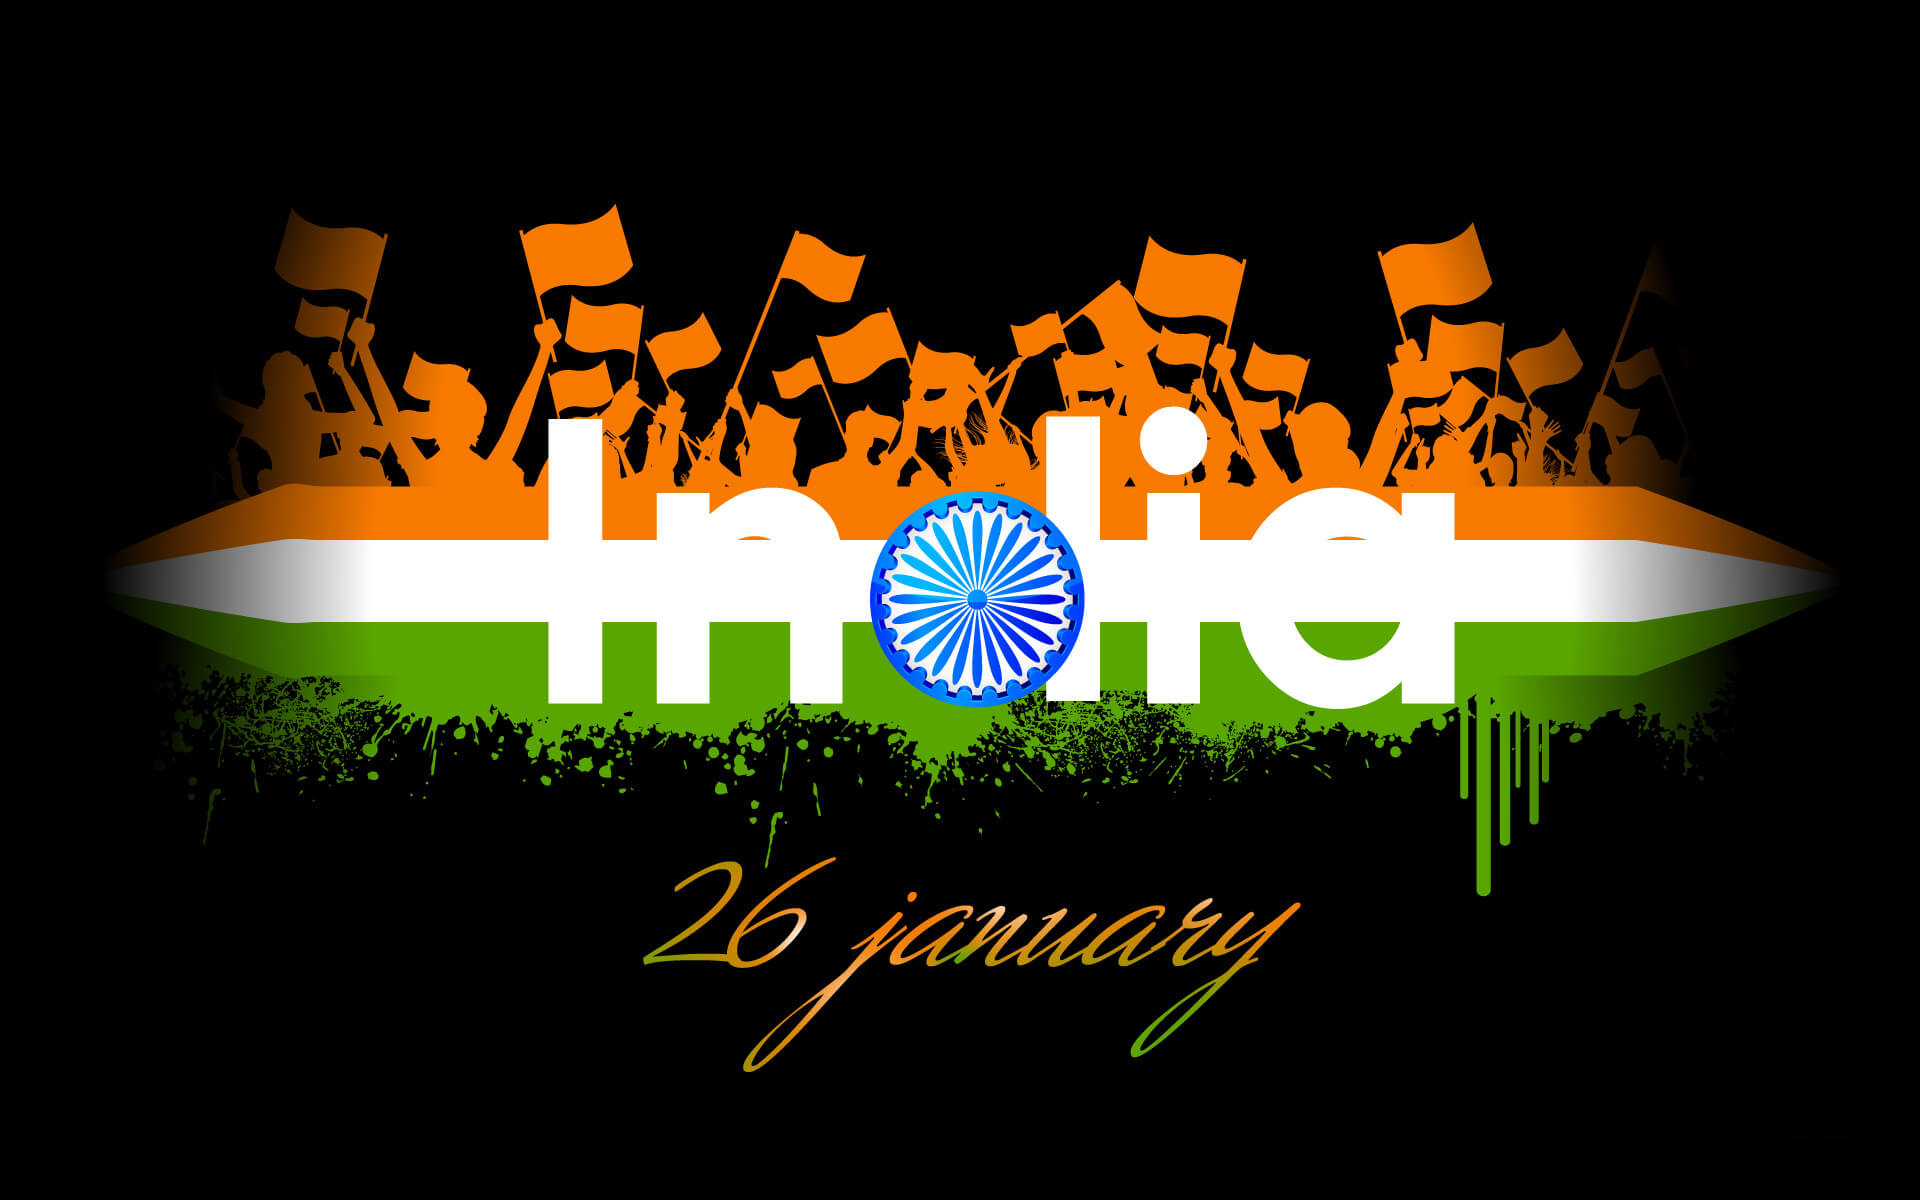 happy republic day wishes india freedom fighters 26 january hd wallpaper